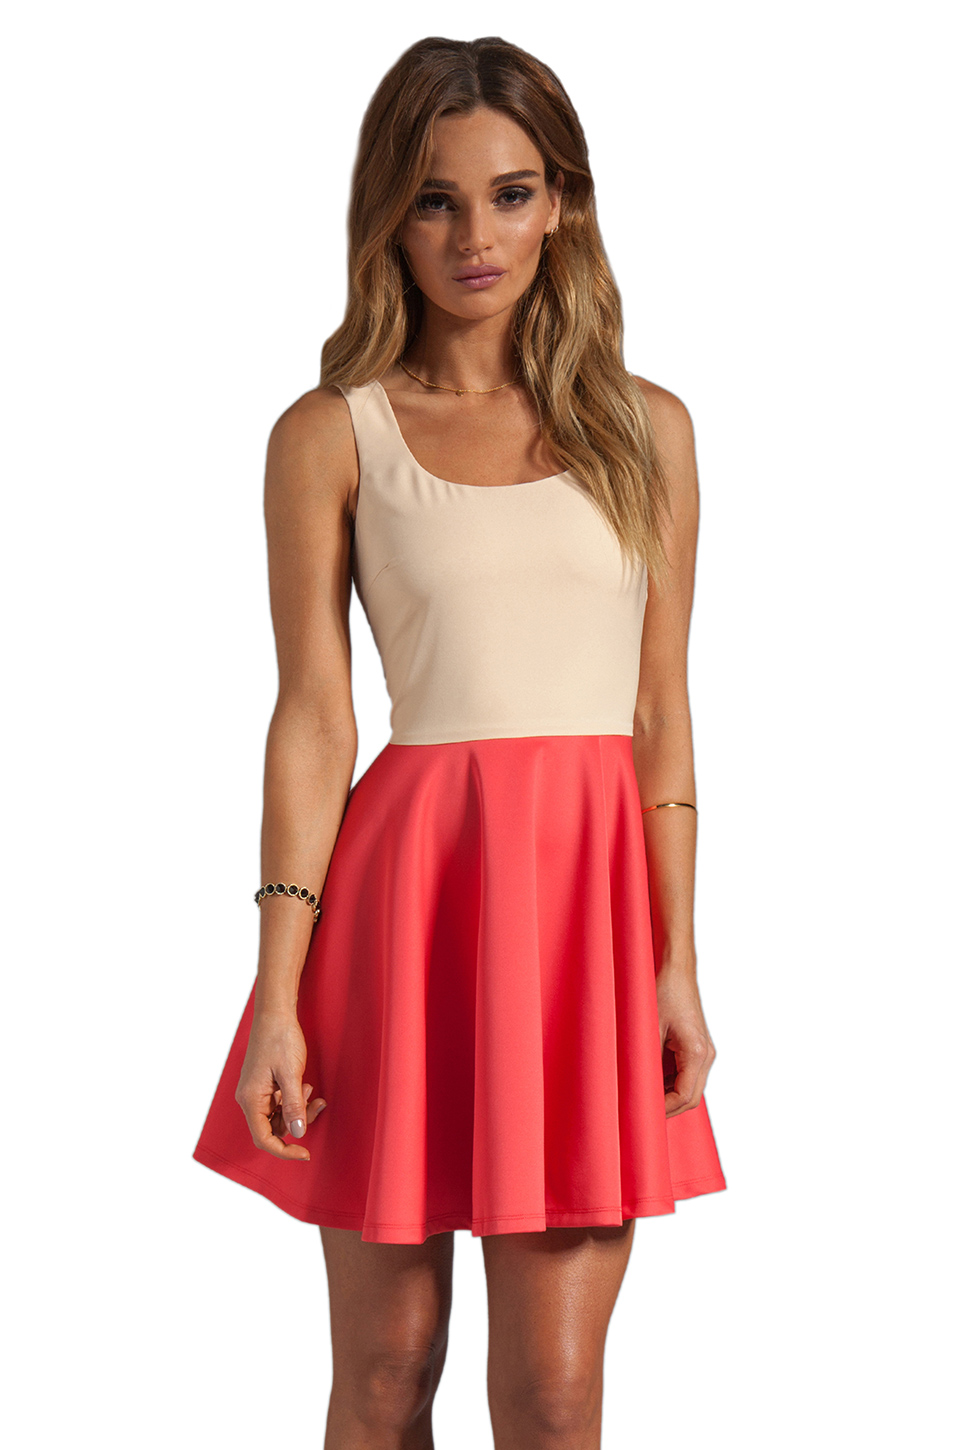 BLAQUE LABEL Dress in Nude/Coral